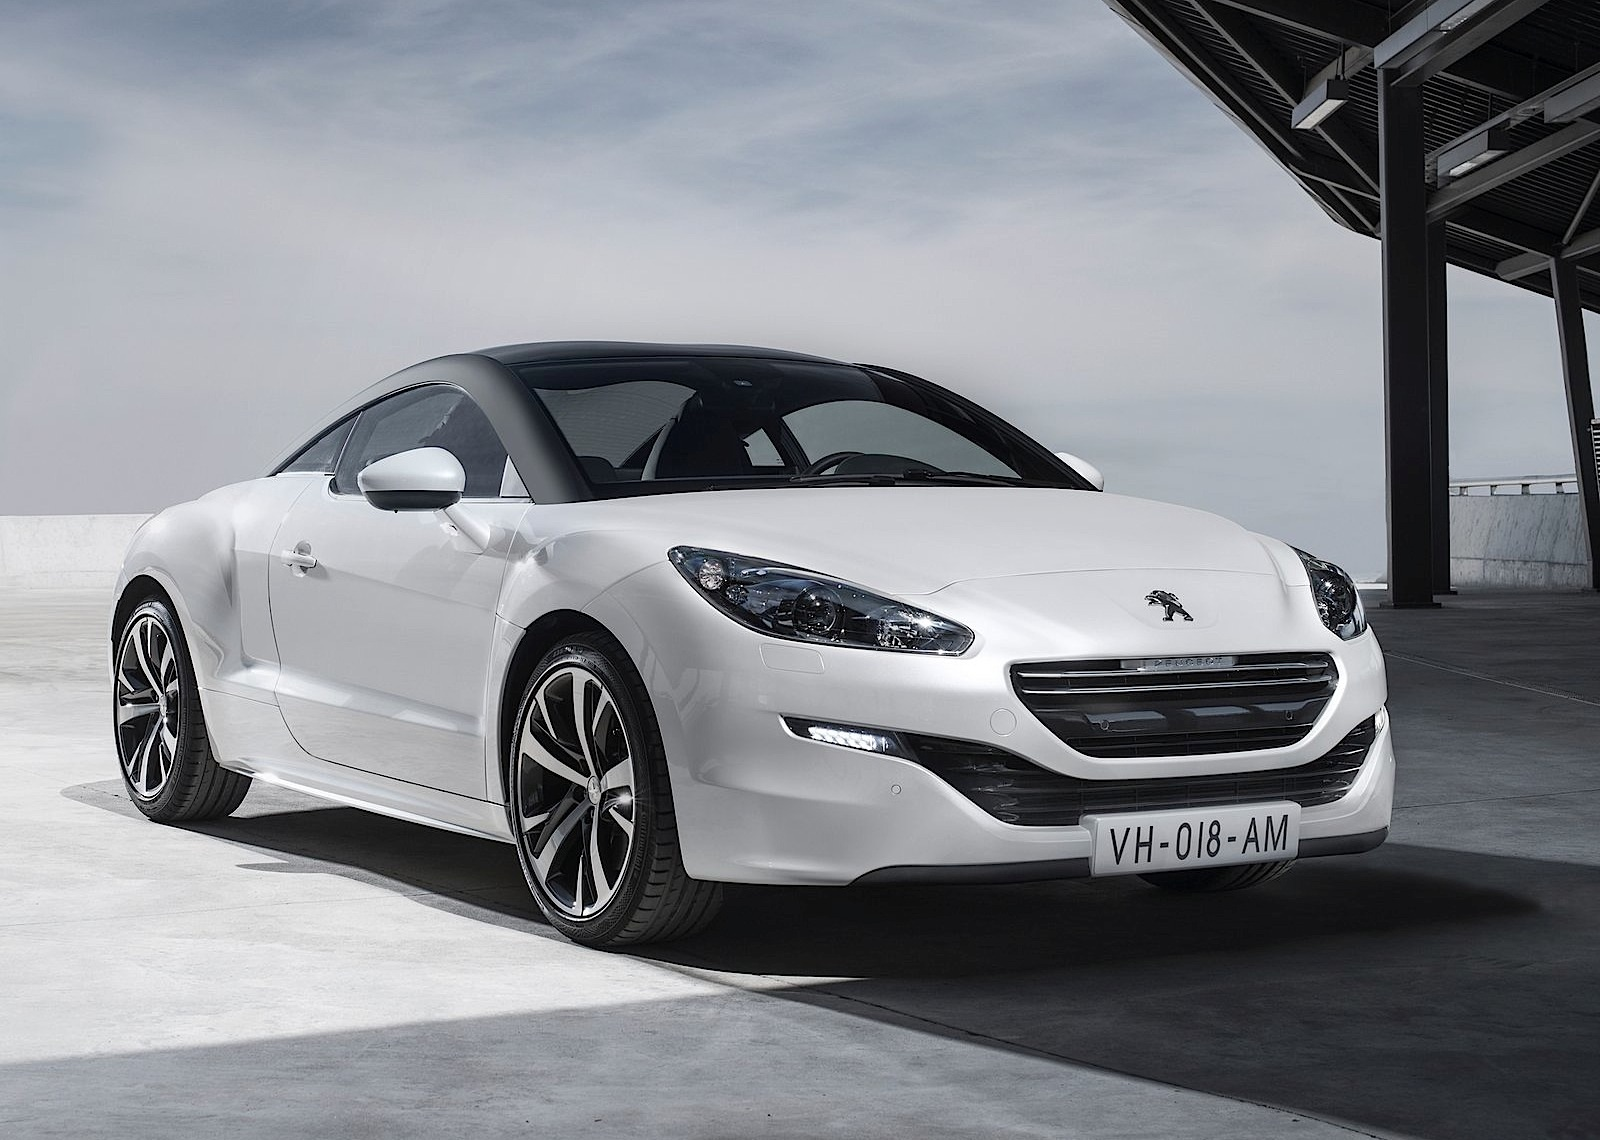 peugeot rcz specs photos 2013 2014 2015 2016 2017 2018 2019 autoevolution. Black Bedroom Furniture Sets. Home Design Ideas